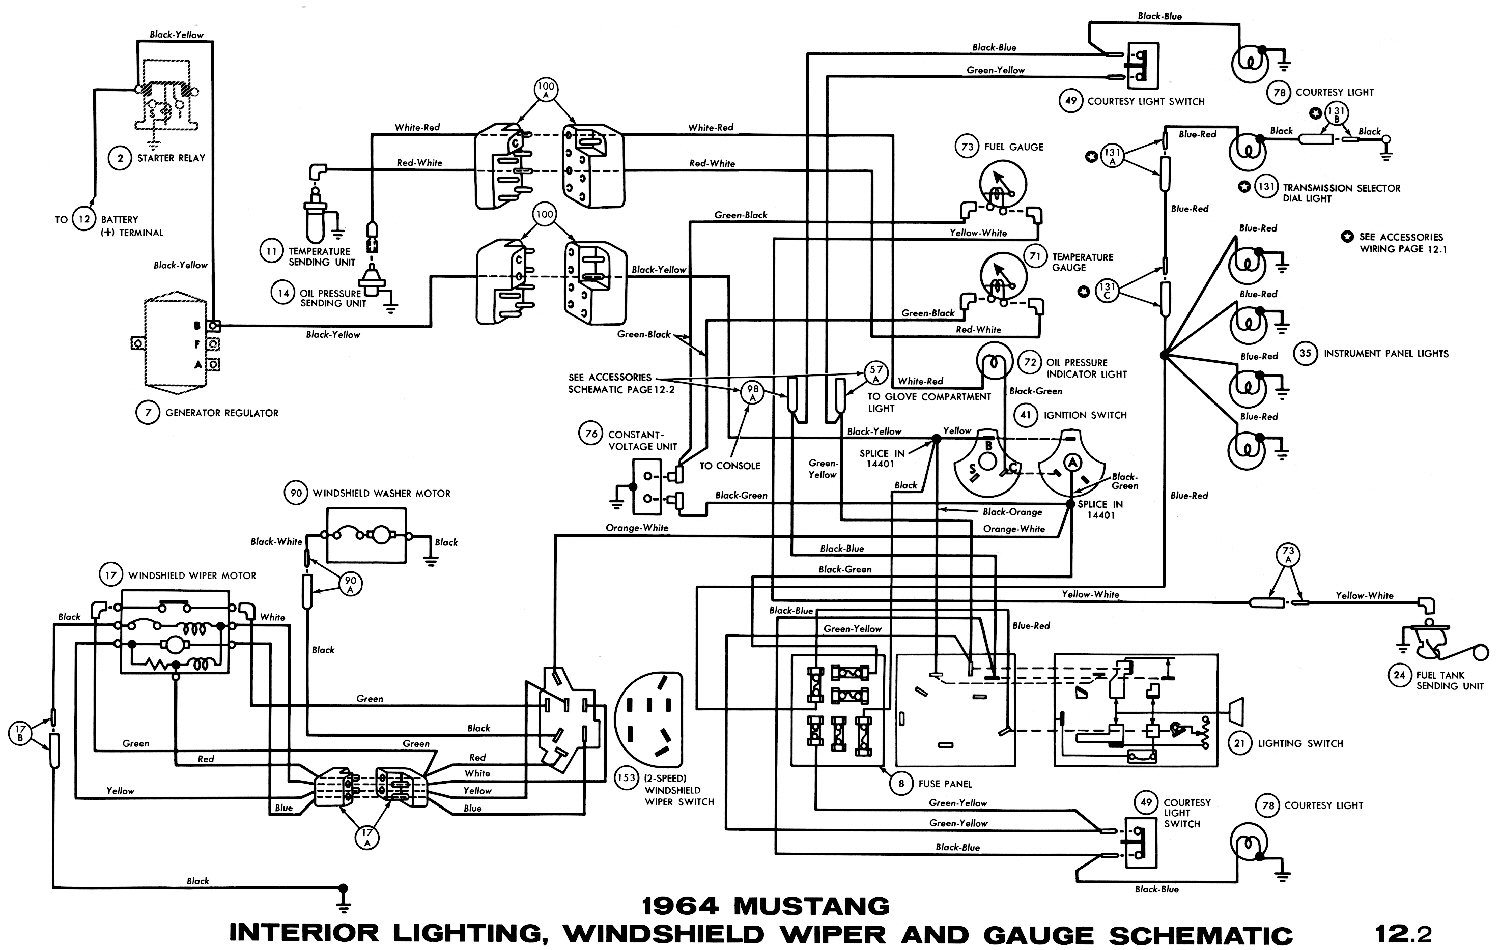 1984 Jeep Wagoneer Wiring Diagram 1964 Mustang Alternator Diagrams Average Joe Restoration Harley Electronic Ignition